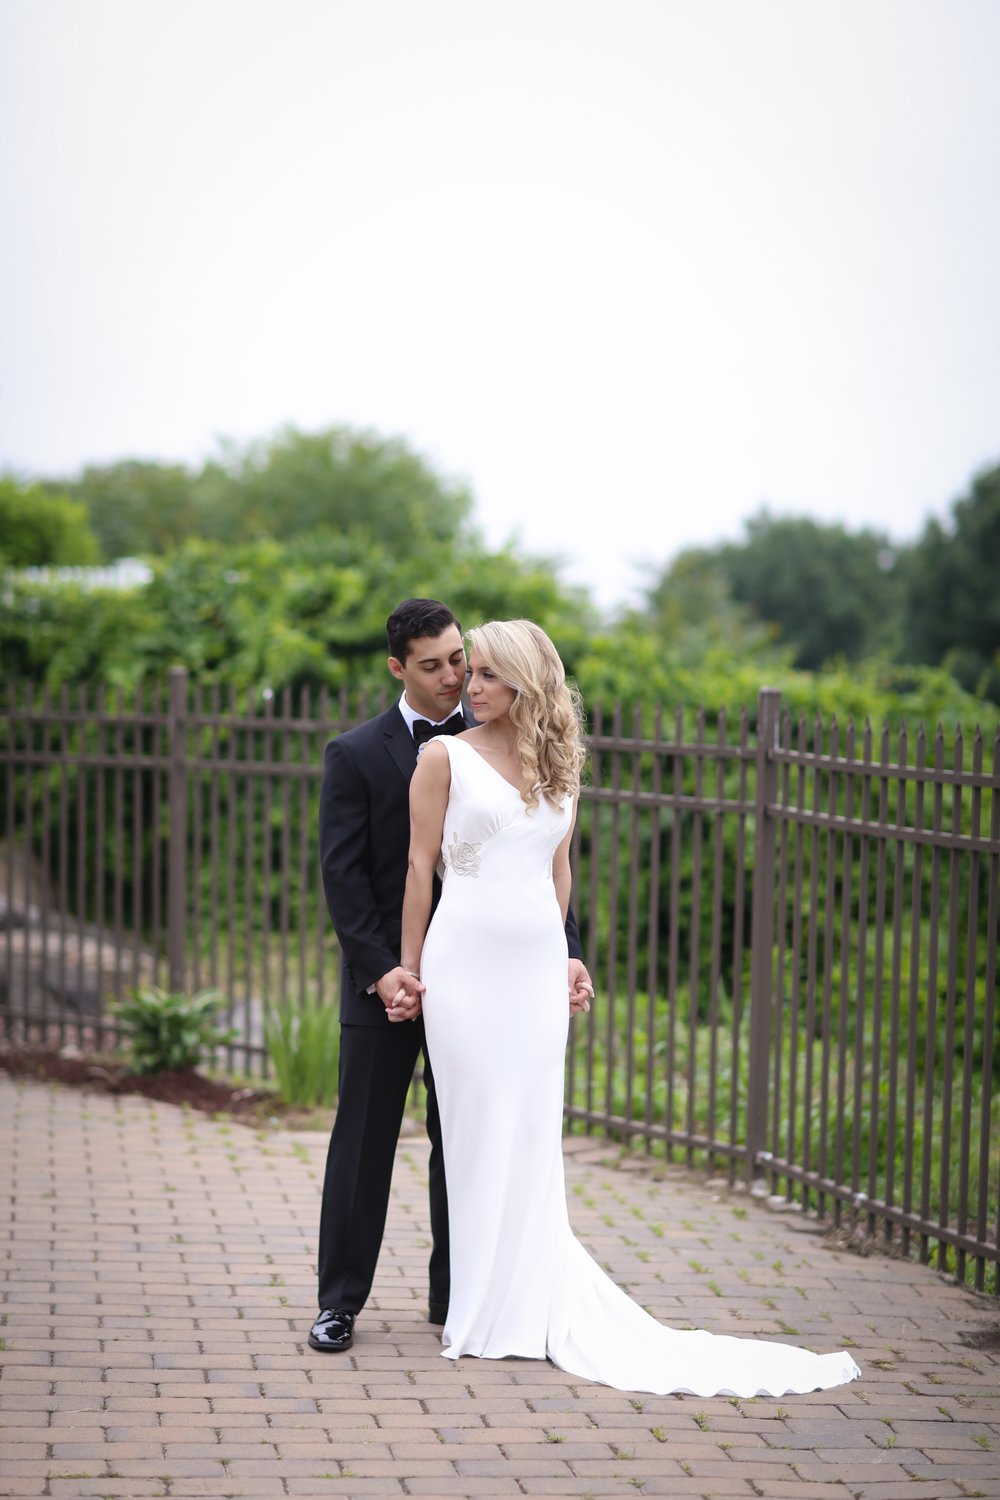 josephpessar_wedding_0411.jpg